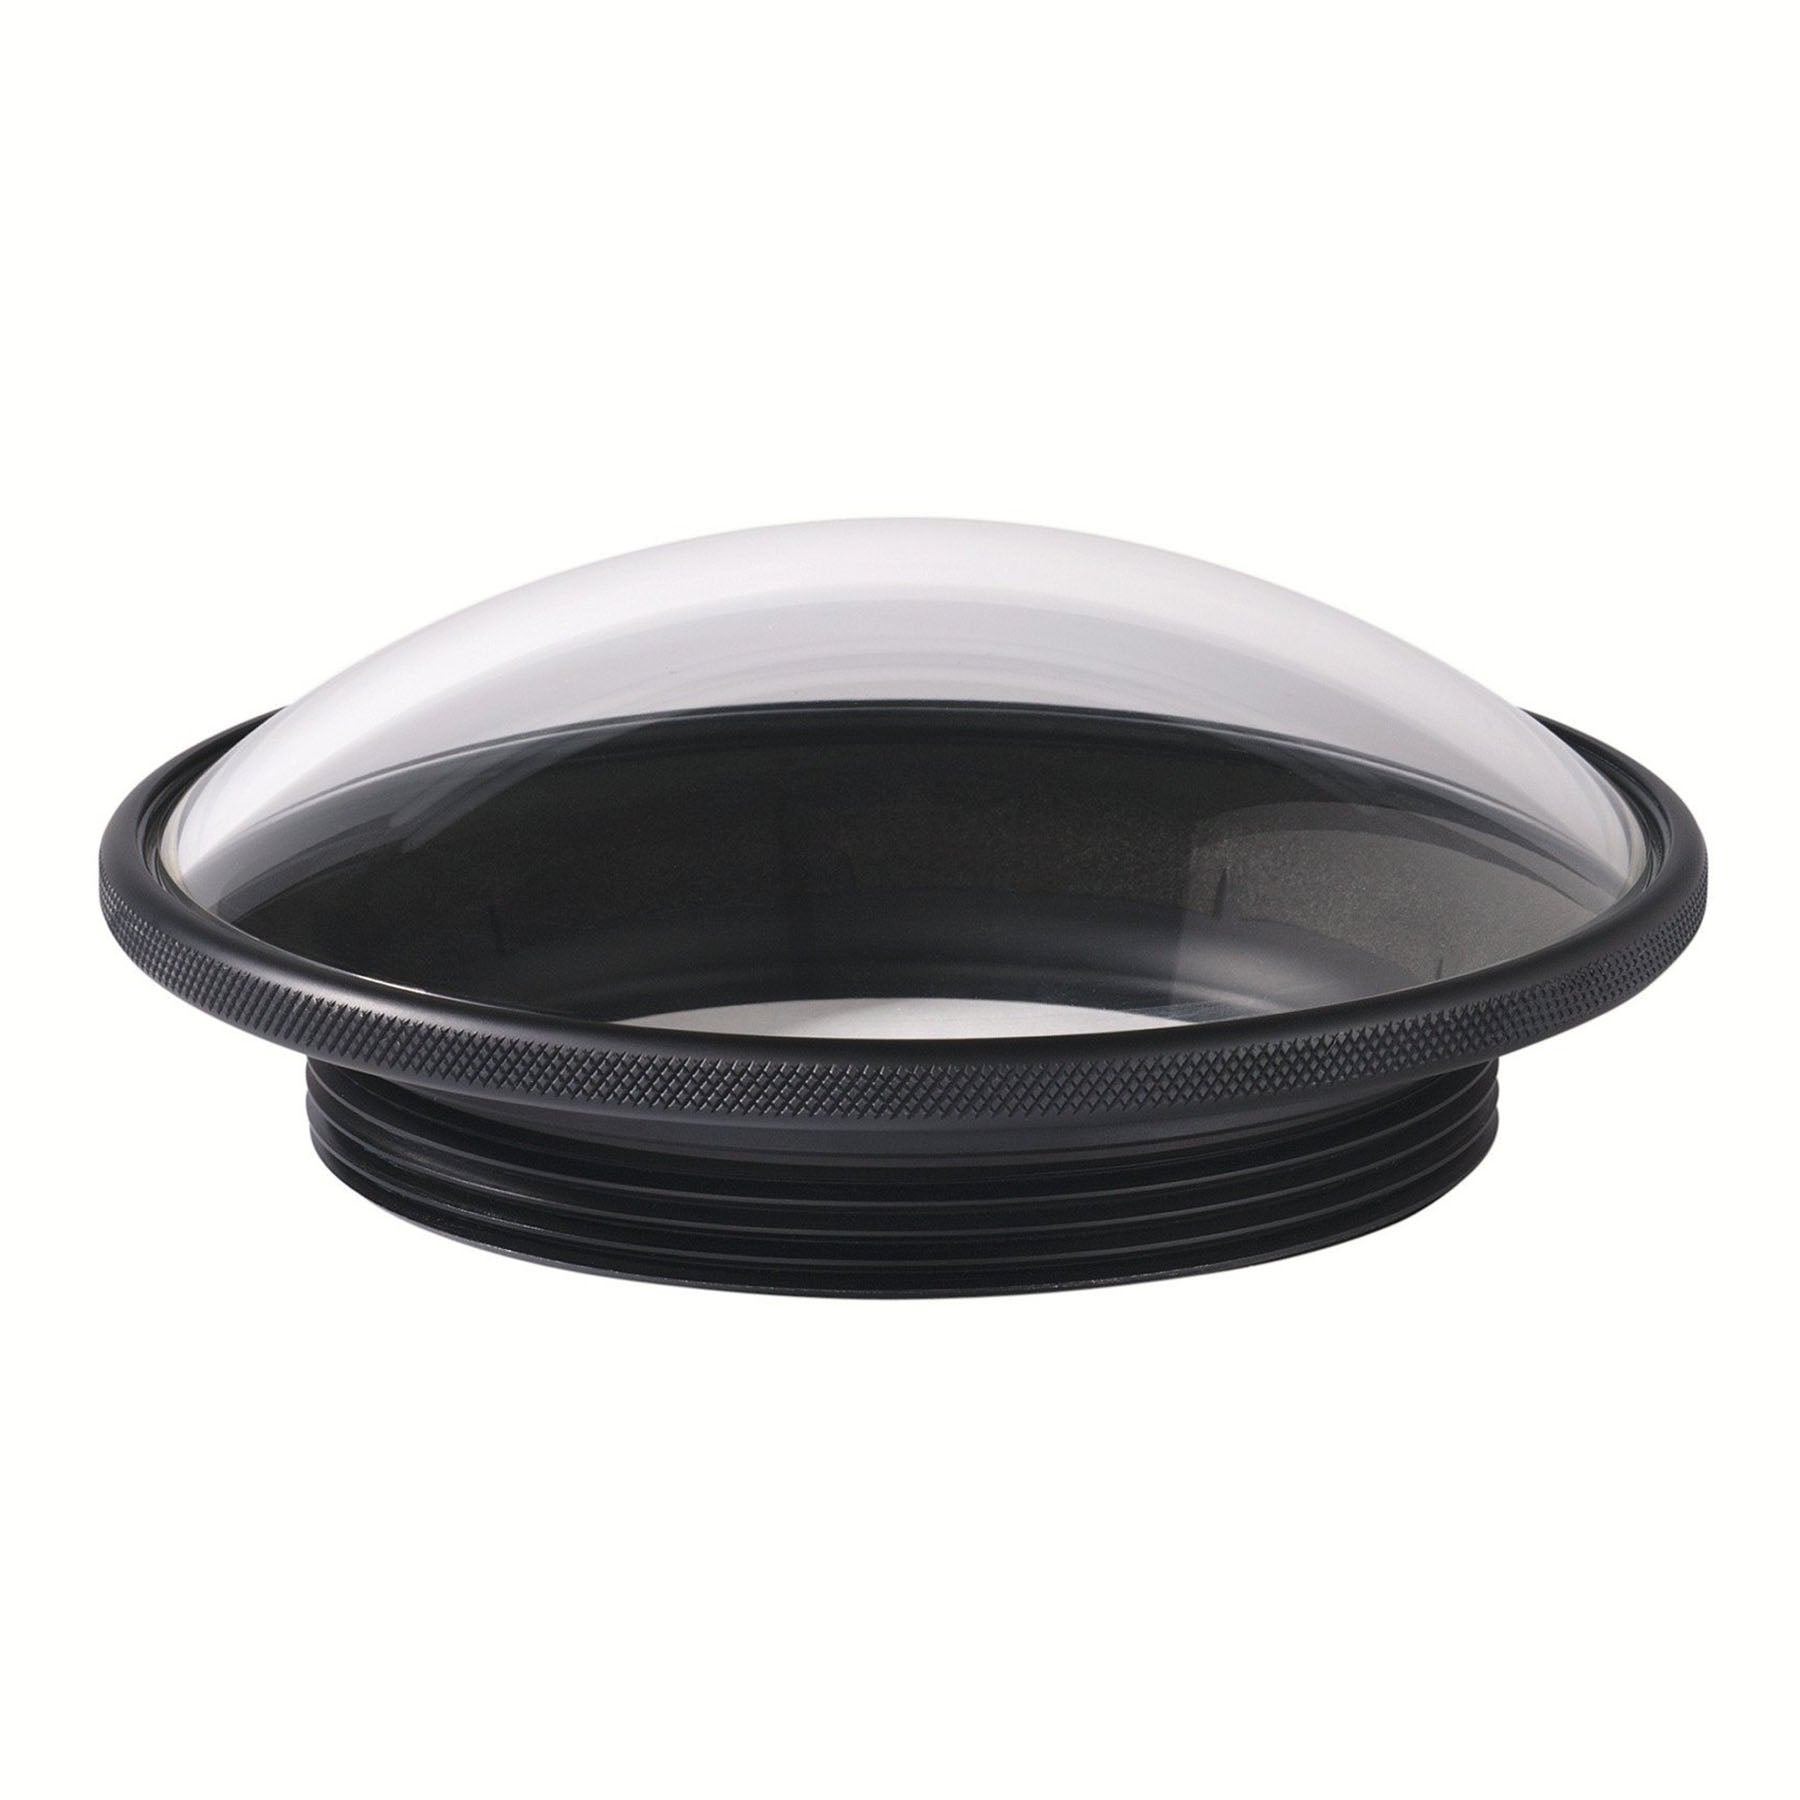 AquaTech PD-65 Lens Dome Port for Underwater Housing